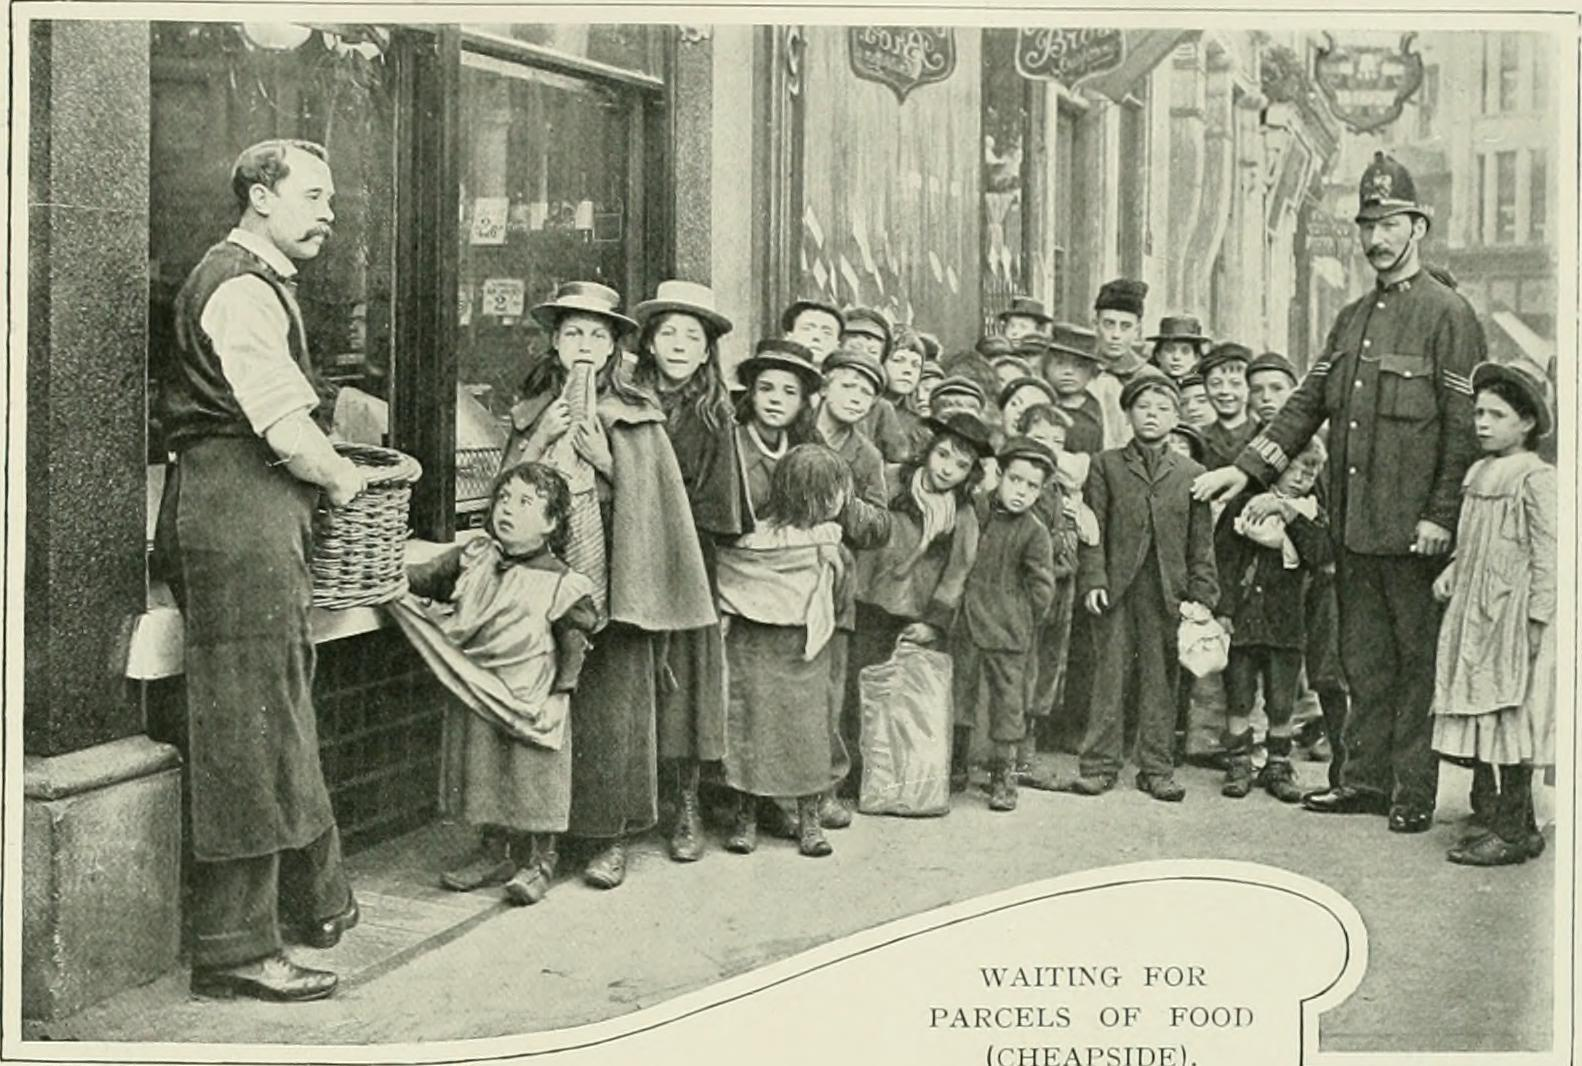 Waiting for Parcels of Food (Cheapside) c.1900